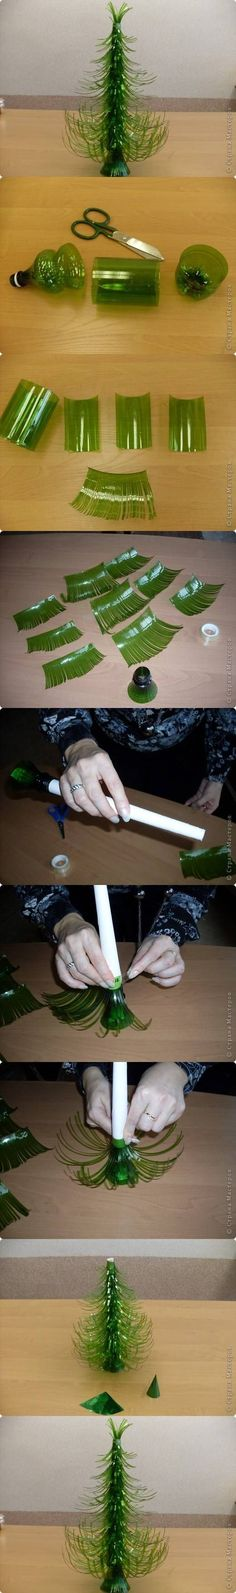 DIY Plastic Bottle Christmas Trees